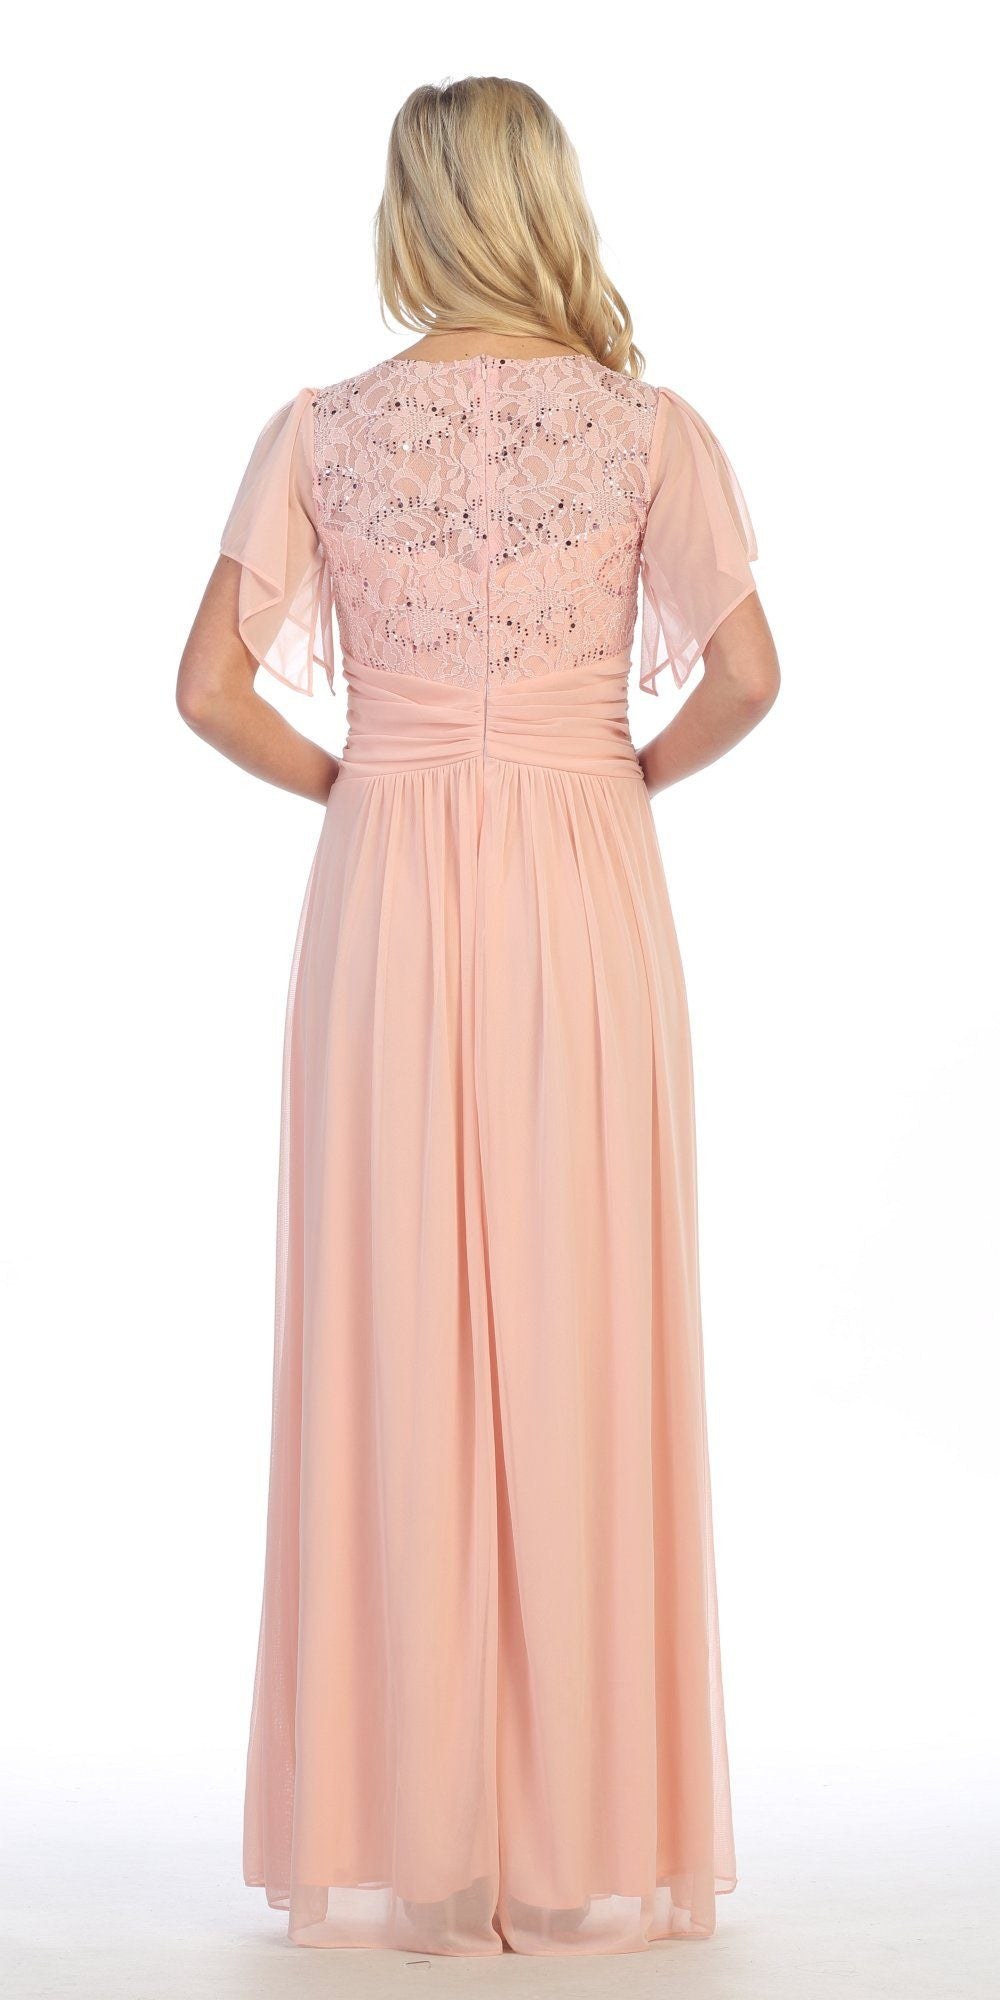 Long Chiffon Short Sleeve Semi Formal Dress Blush Lace Top Sequins Back